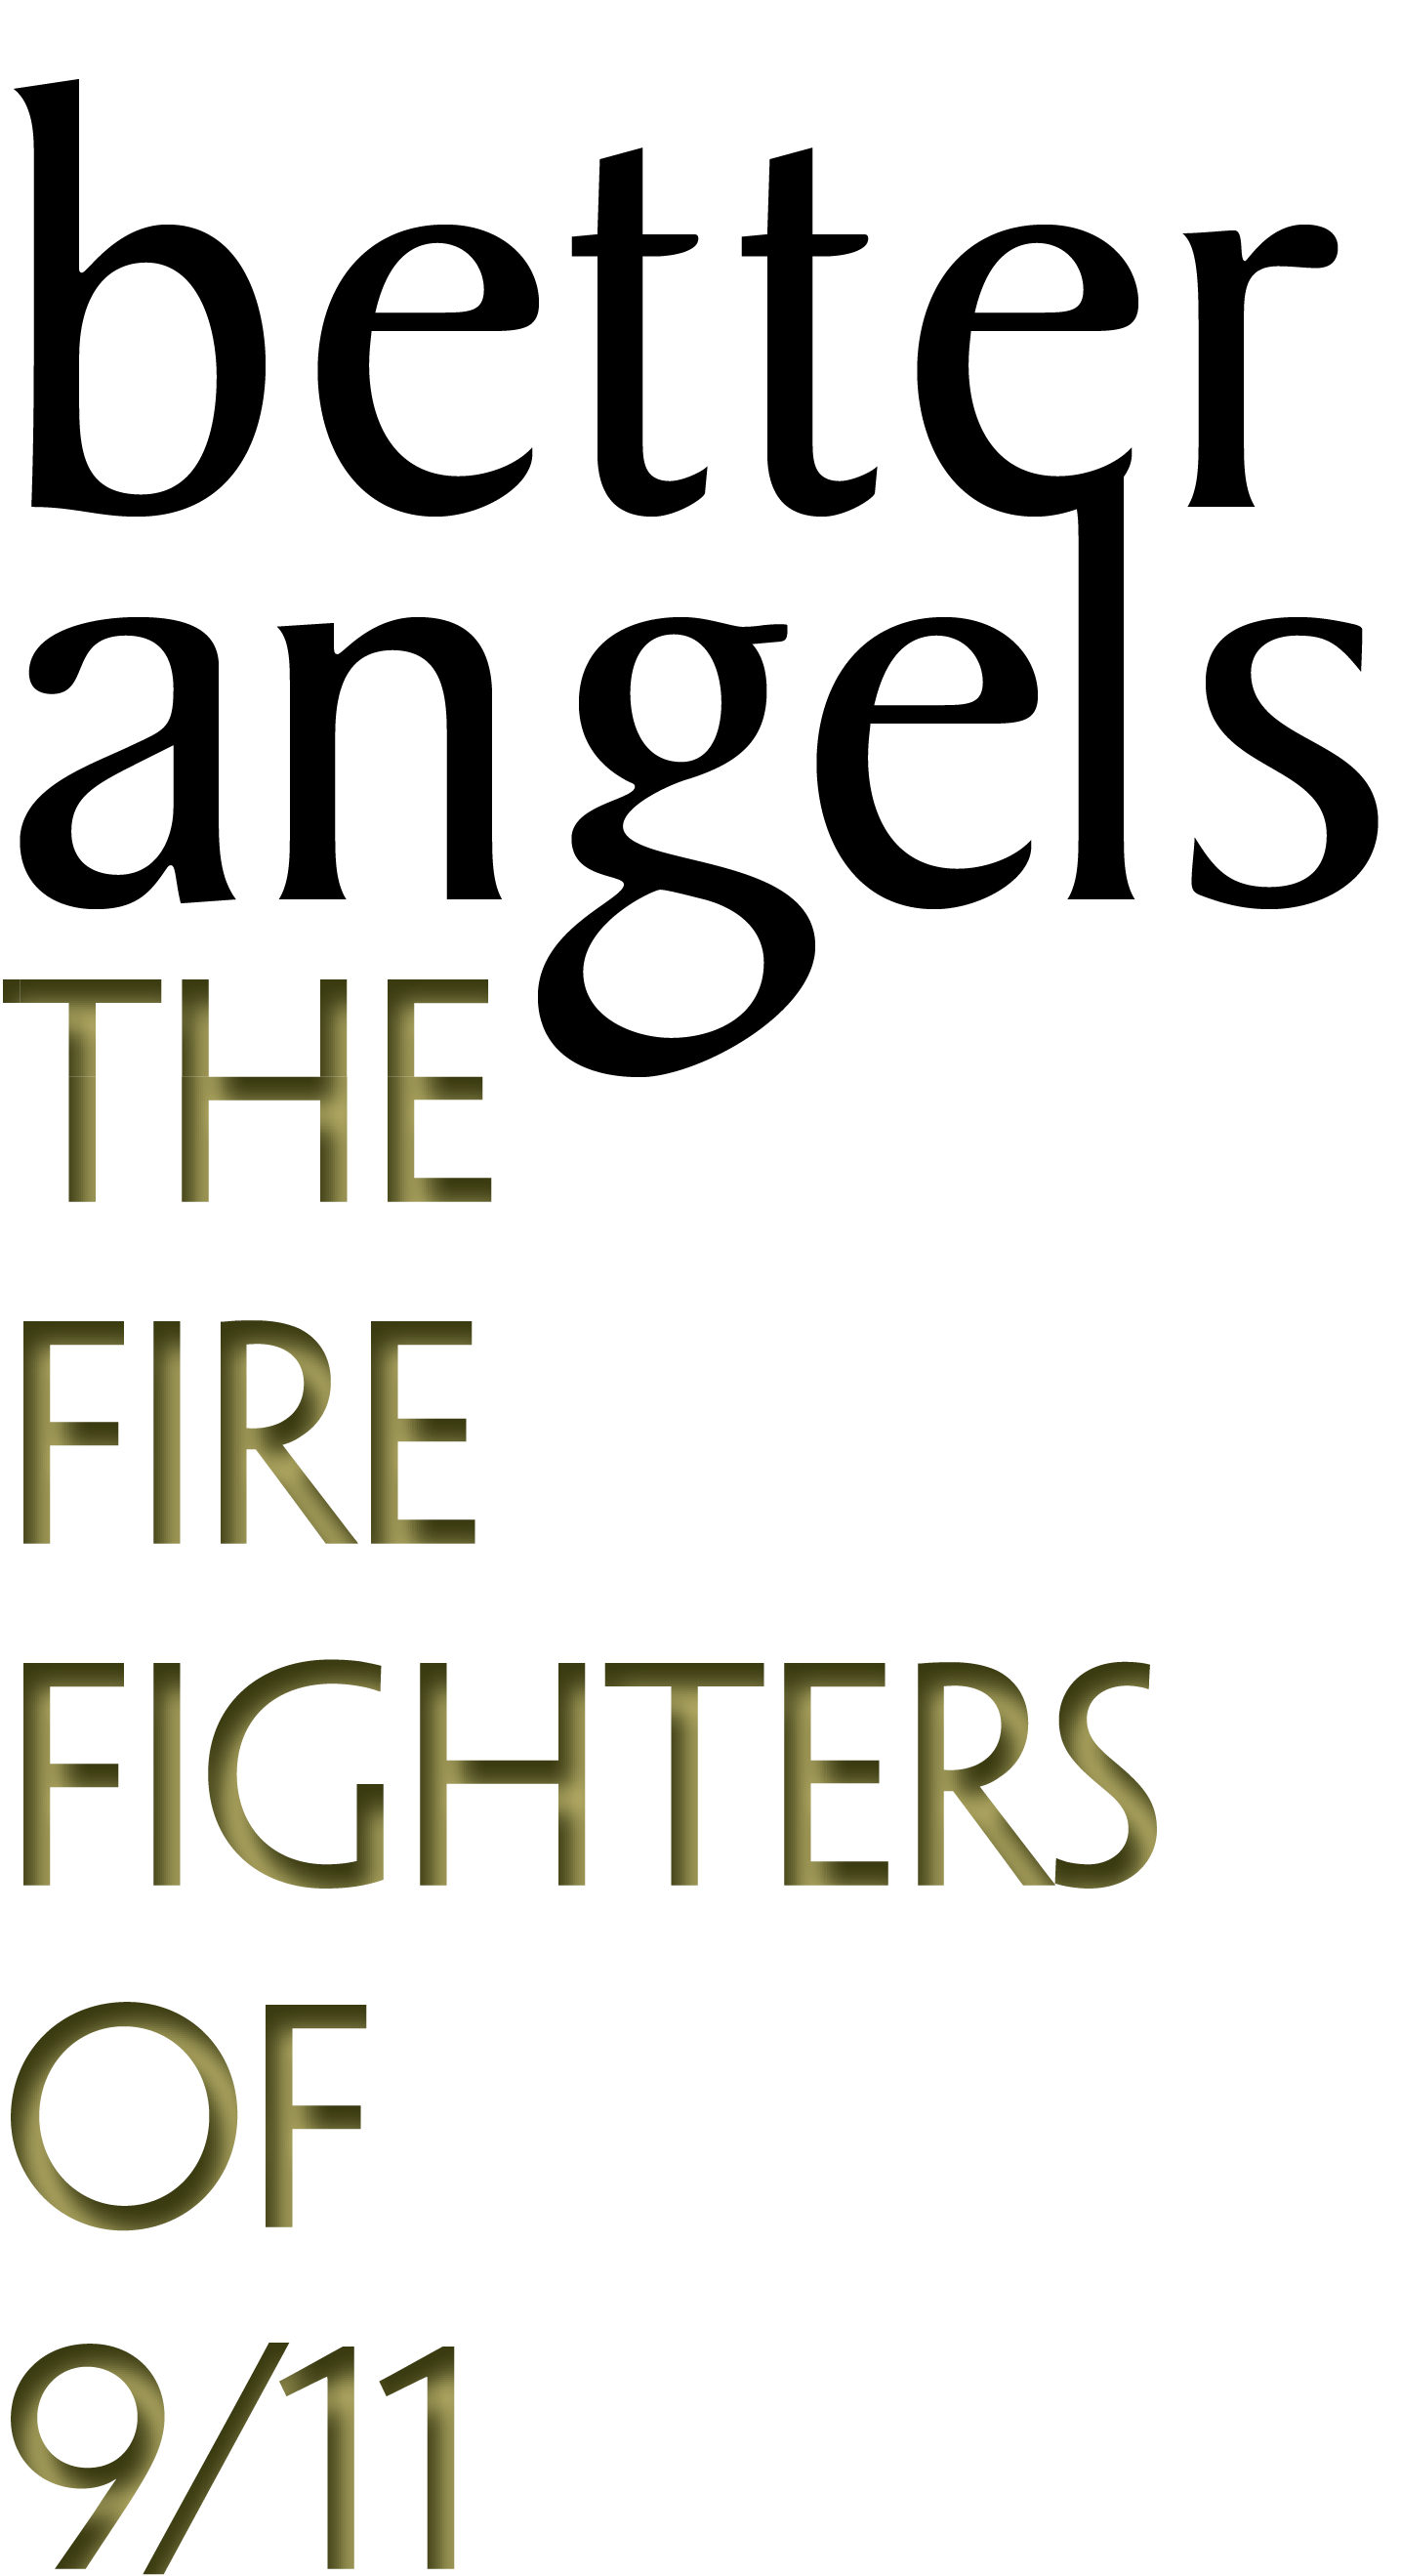 better angels the firefighters on 9/11